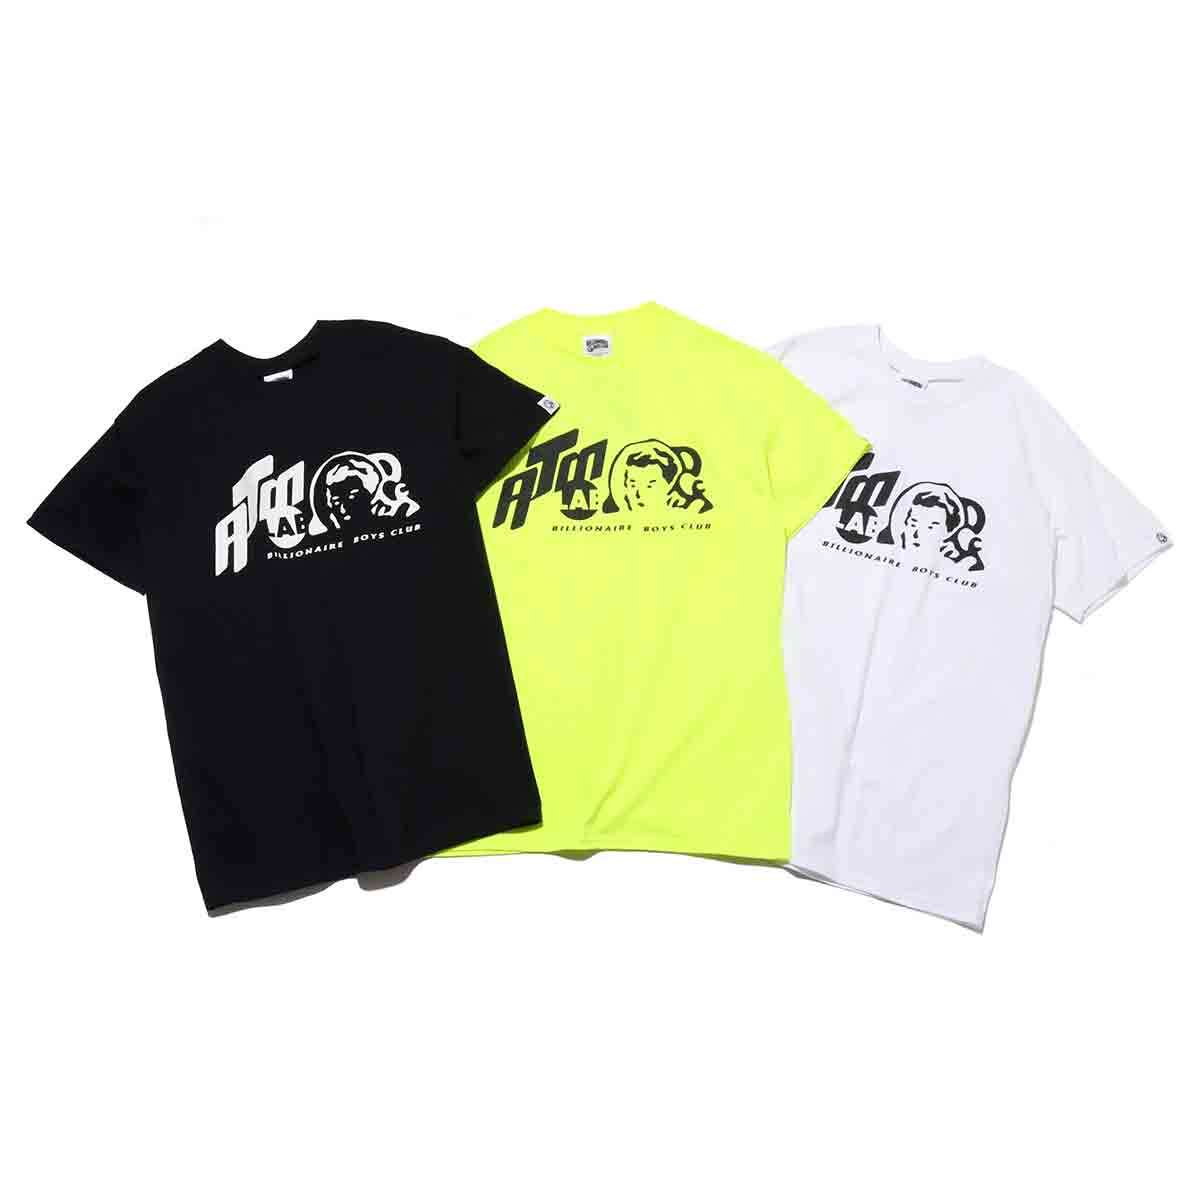 BILLIONAIRE BOYS CLUB x ATMOS LAB T-SHIRTS_ATMOS CON